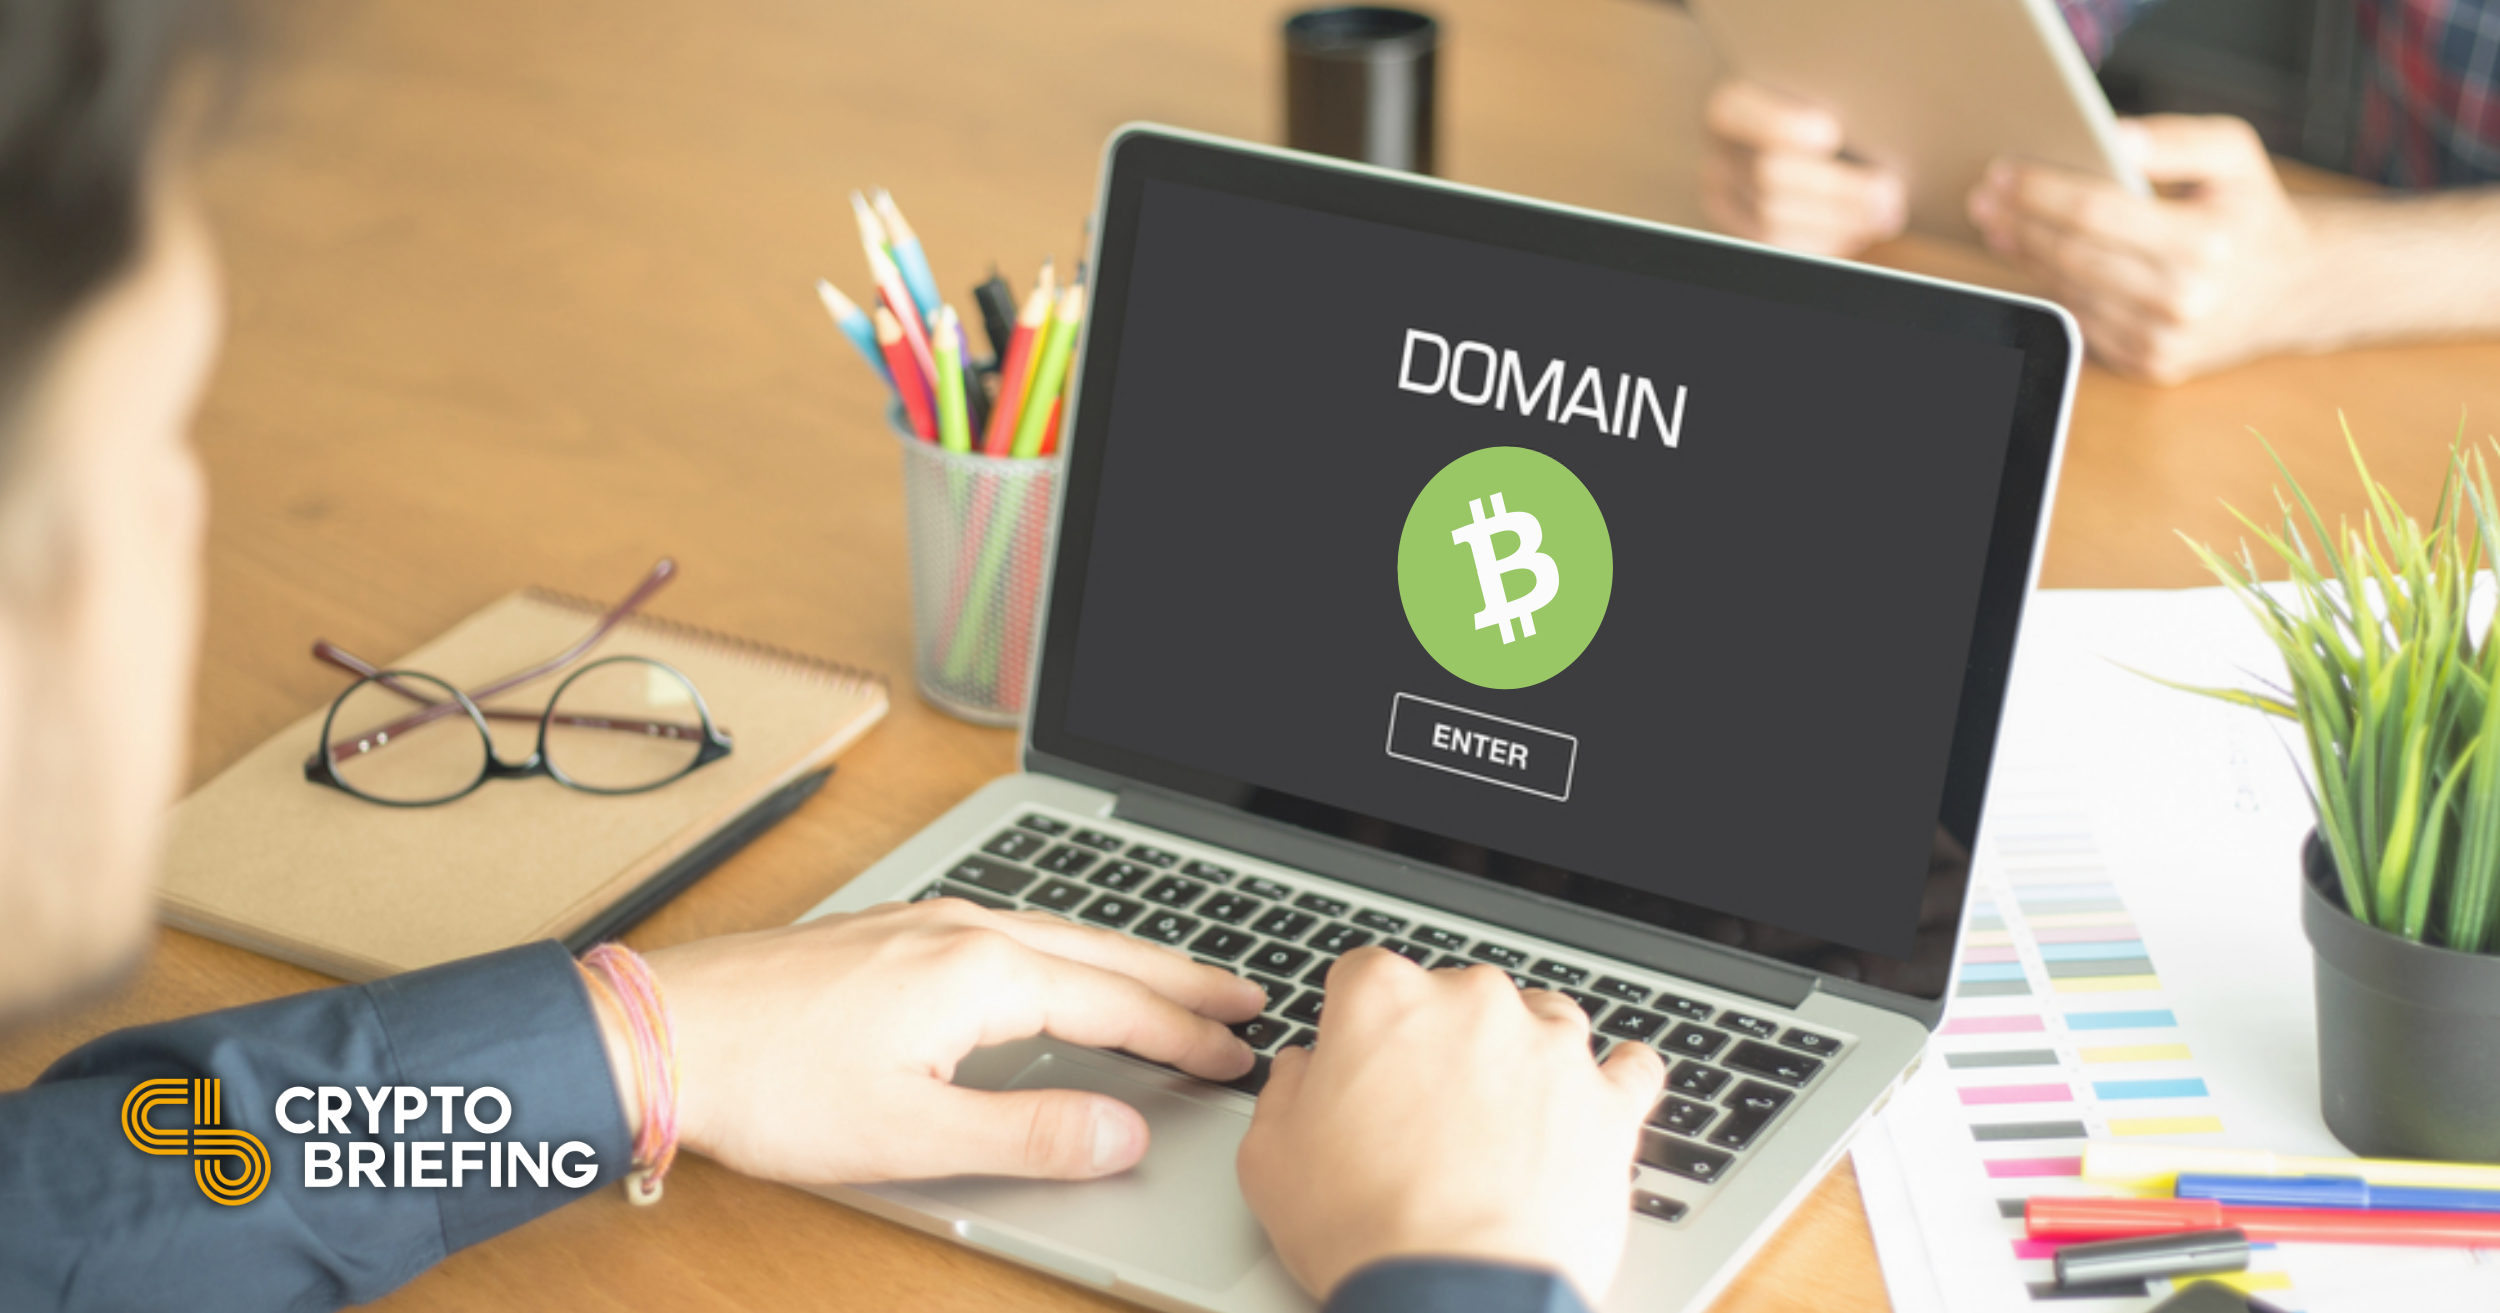 GoDaddy Briefly Put Bitcoin.com Up for Sale By Mistake